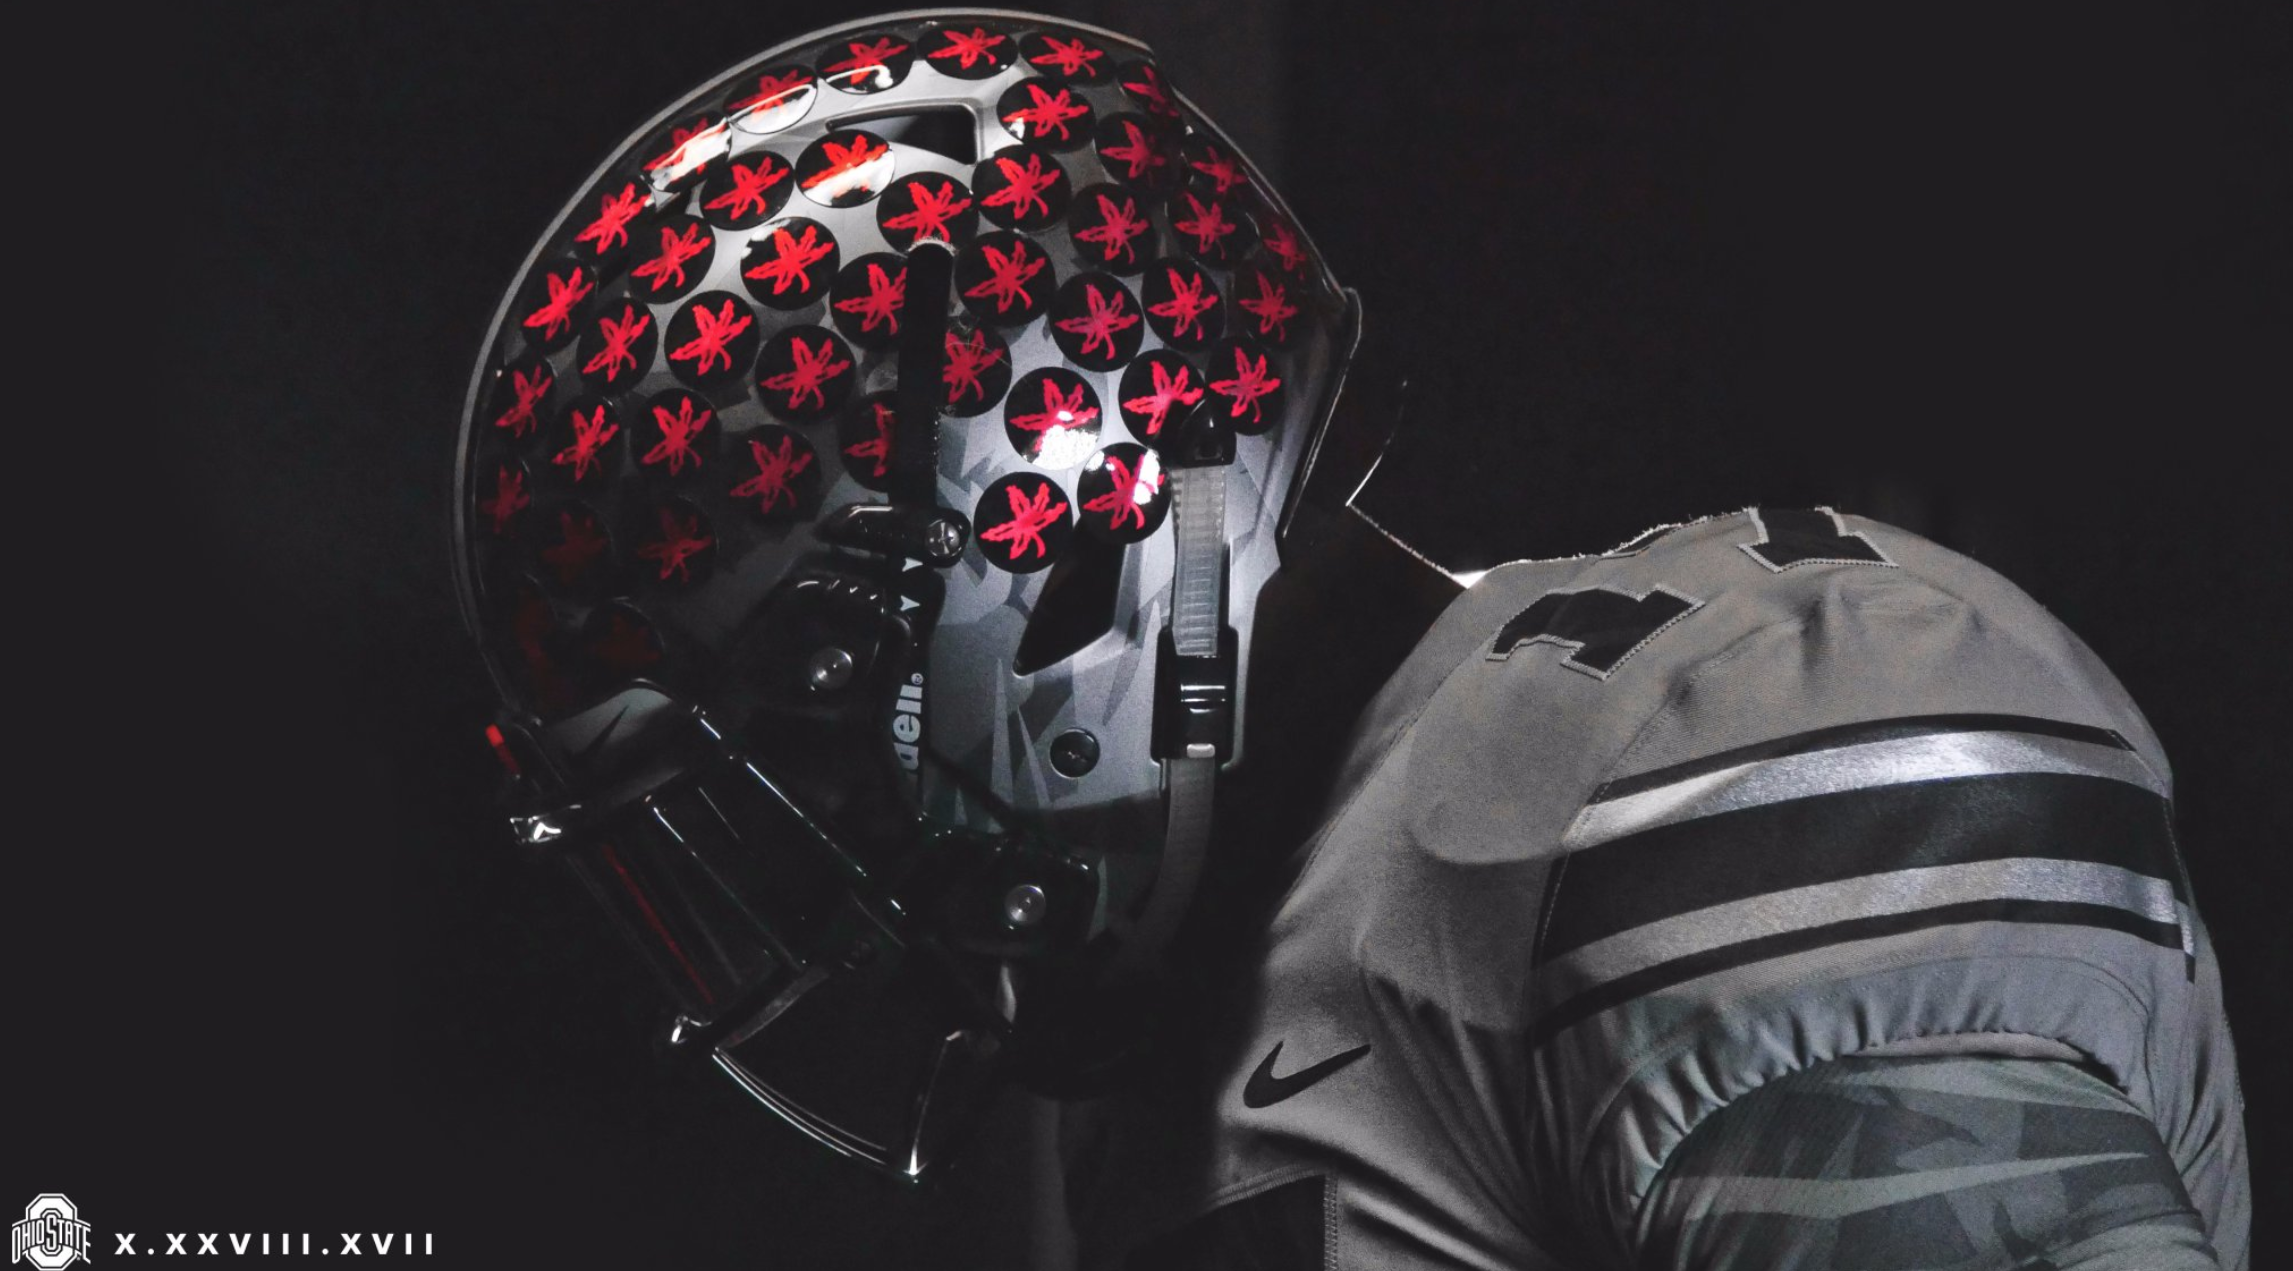 sports shoes 703bd 26f12 Ohio State to wear gray uniforms, black helmets vs. Penn State